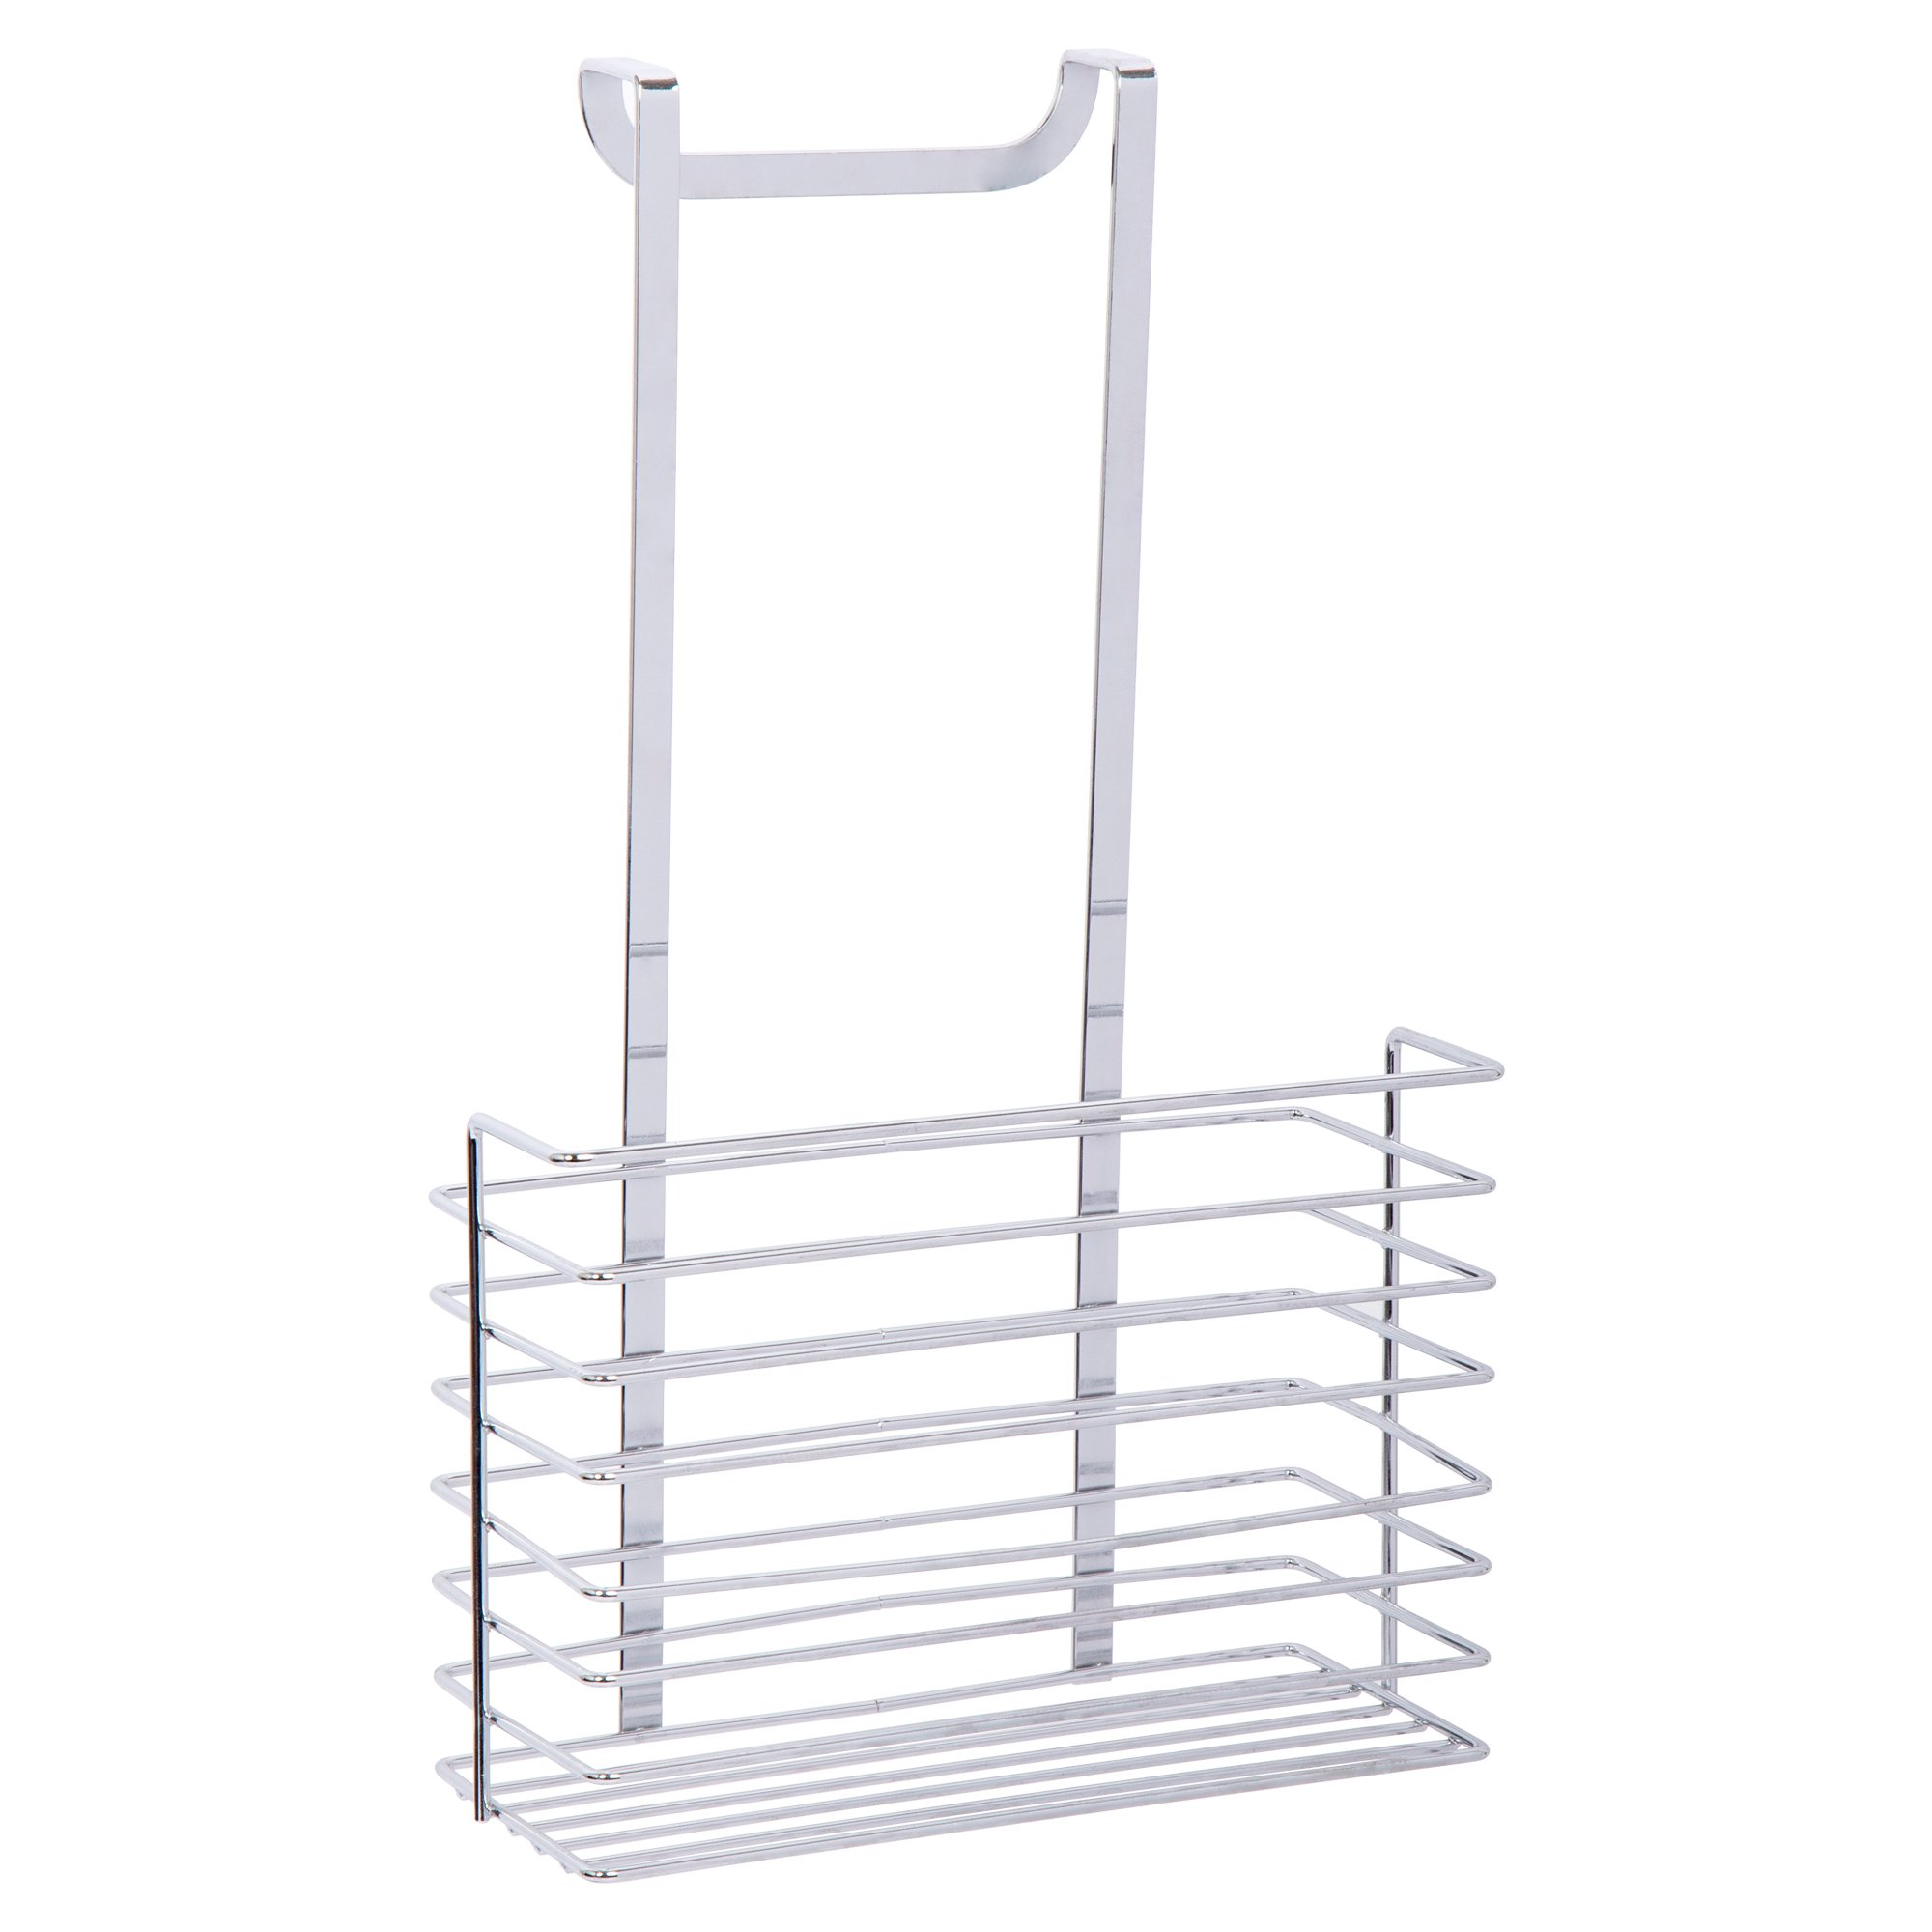 Action 1 Over the Cabinet Deep Basket, 14 inches, silver